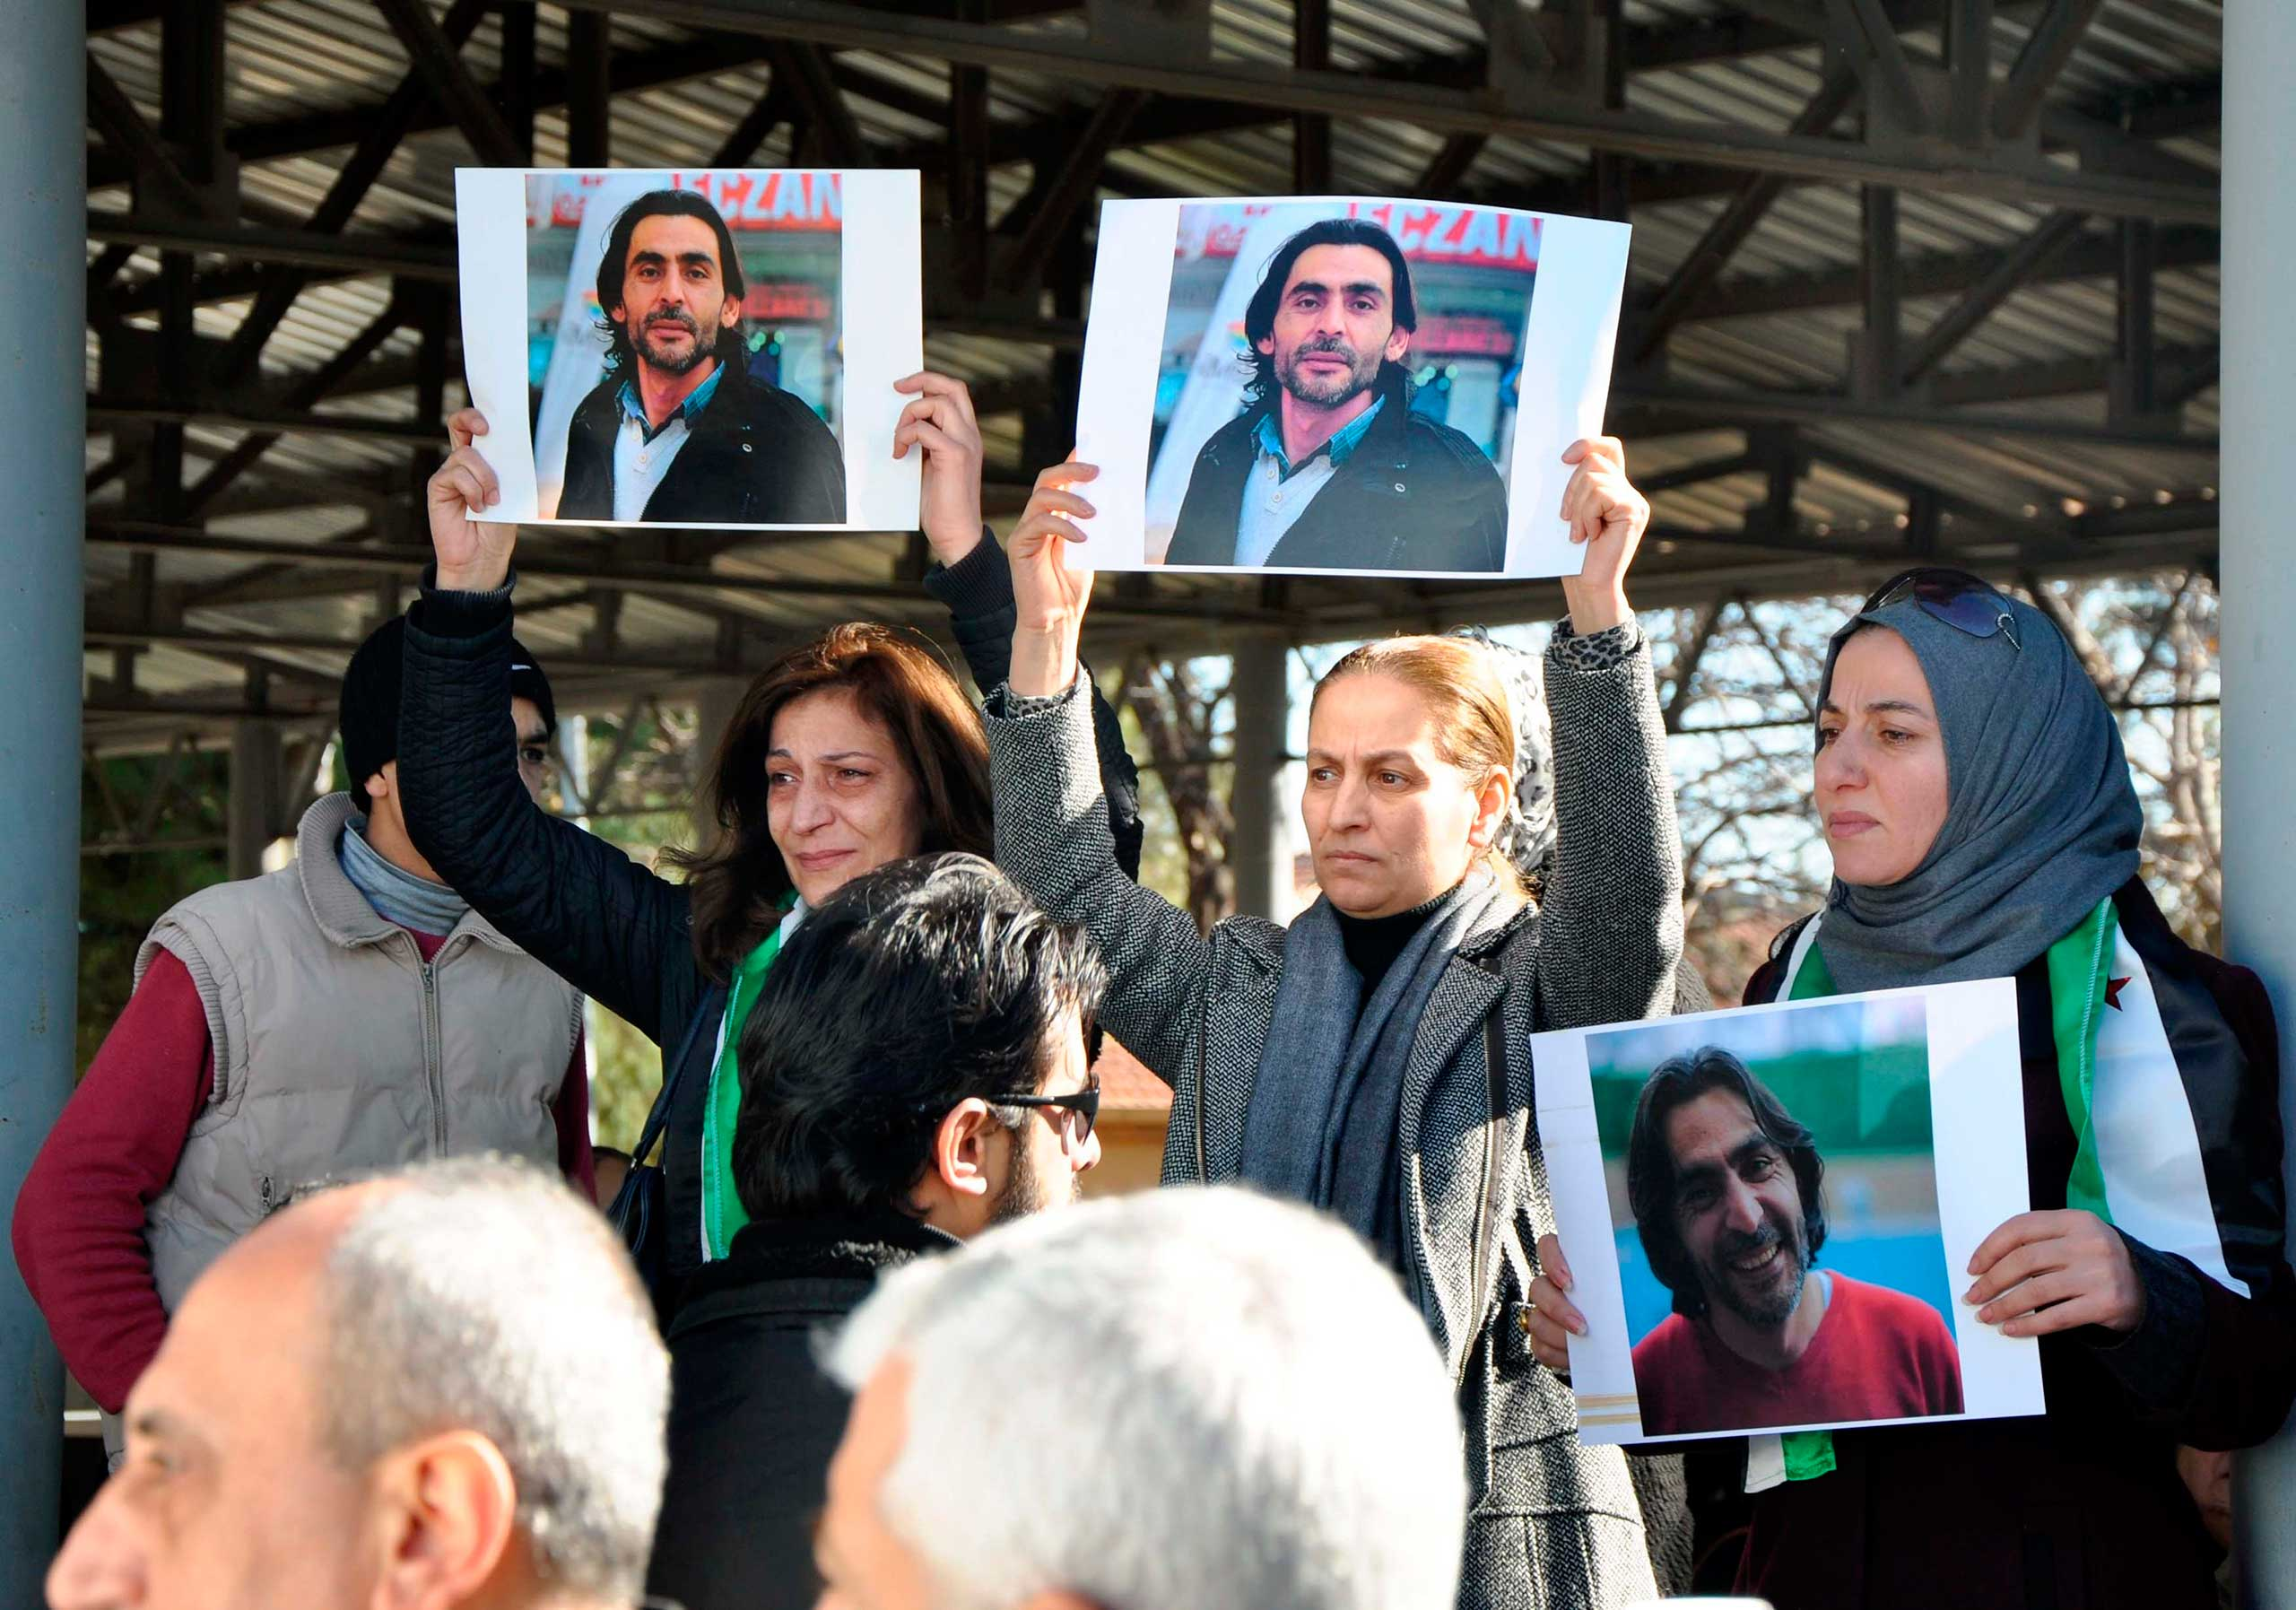 Women hold pictures of film maker Naji Jerf, a citizen journalist with the anti-ISIS activist group Raqqa is Being Slaughtered Silently, who was killed Dec. 27 in Gaziantep, Turkey, on Dec. 28, 2015.